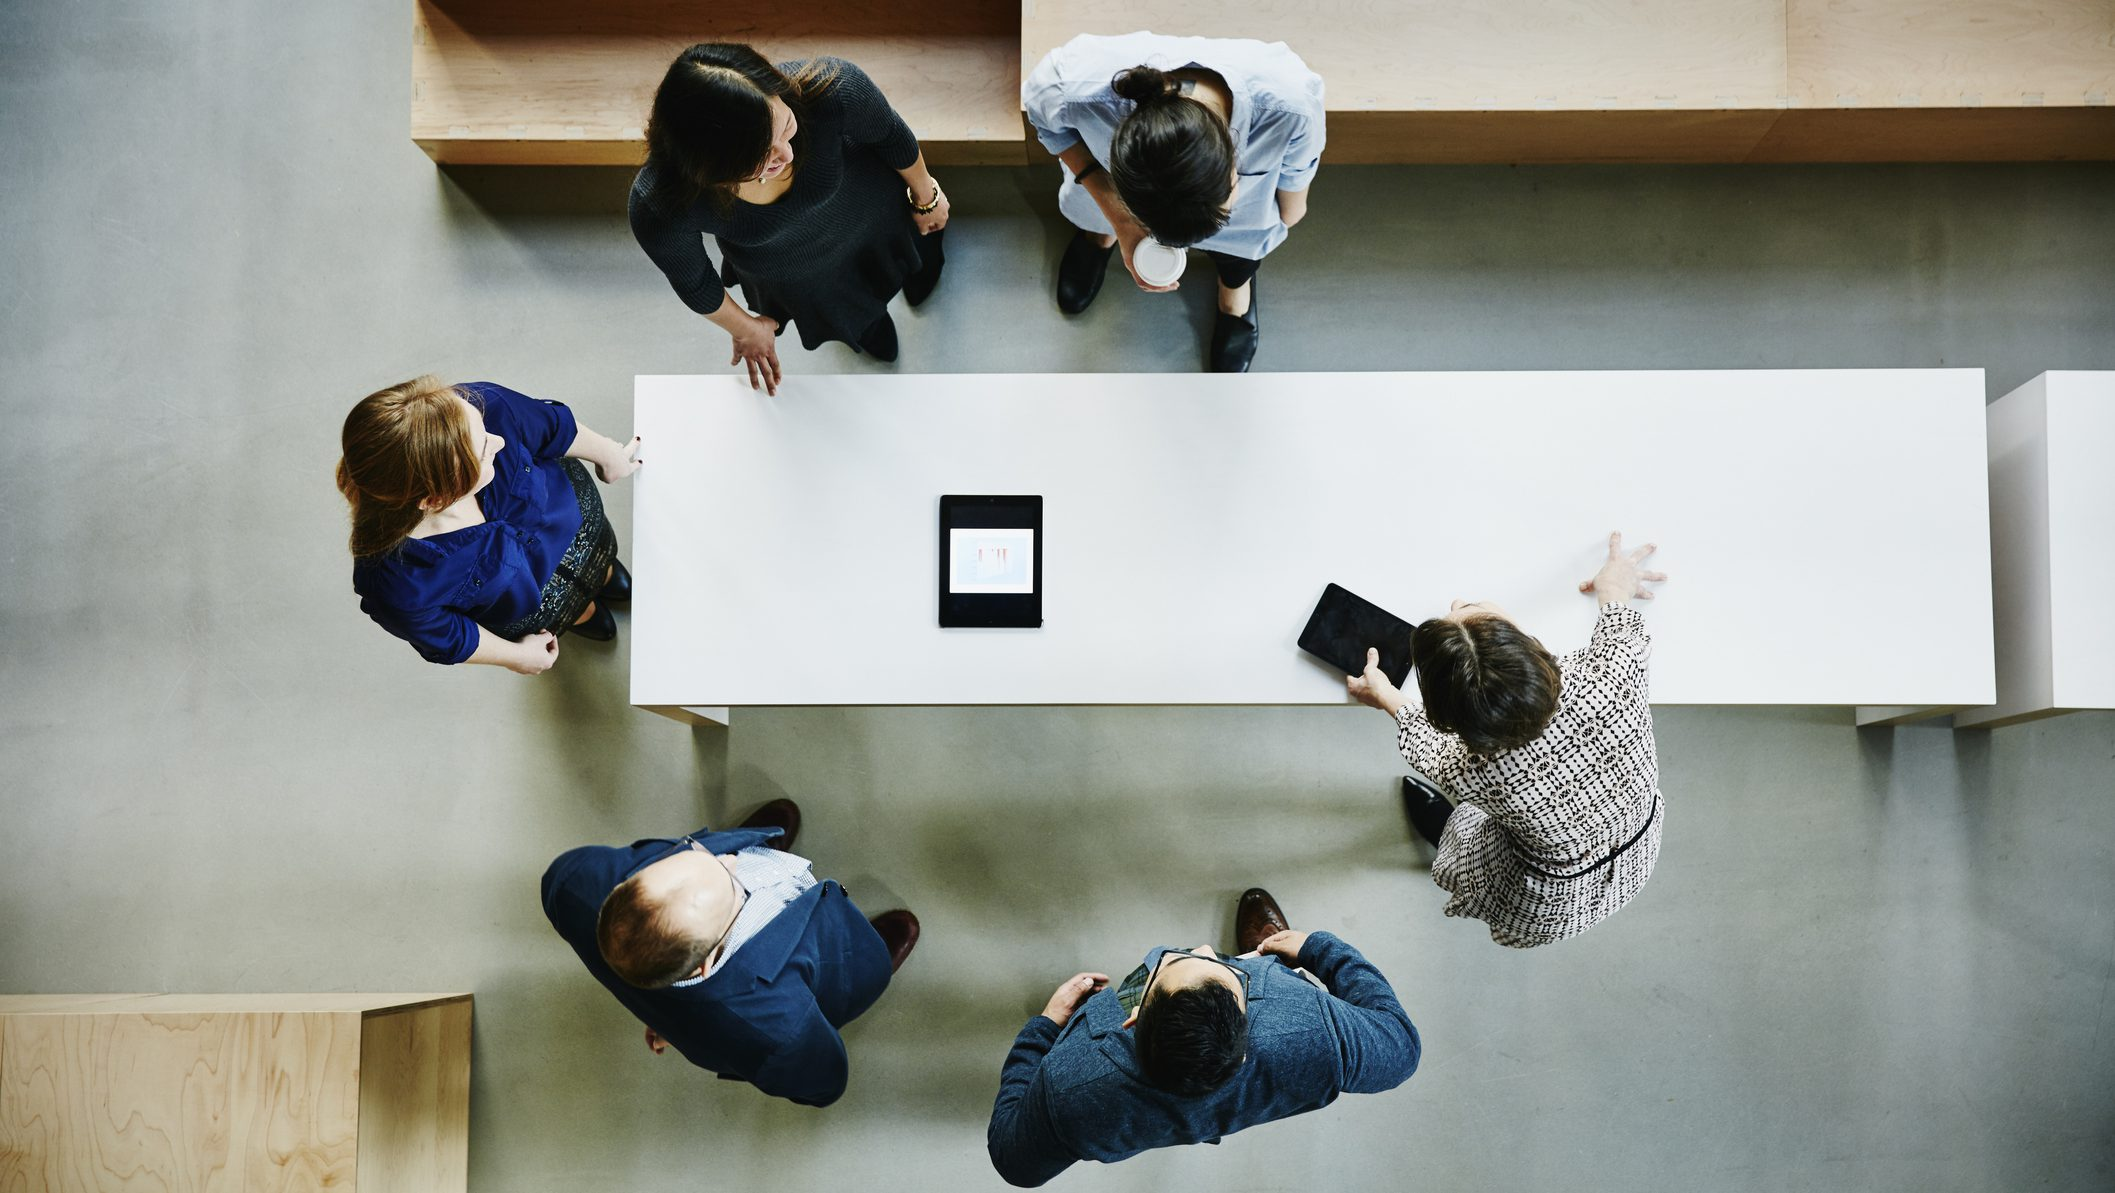 Overhead view of businesswoman leading meeting